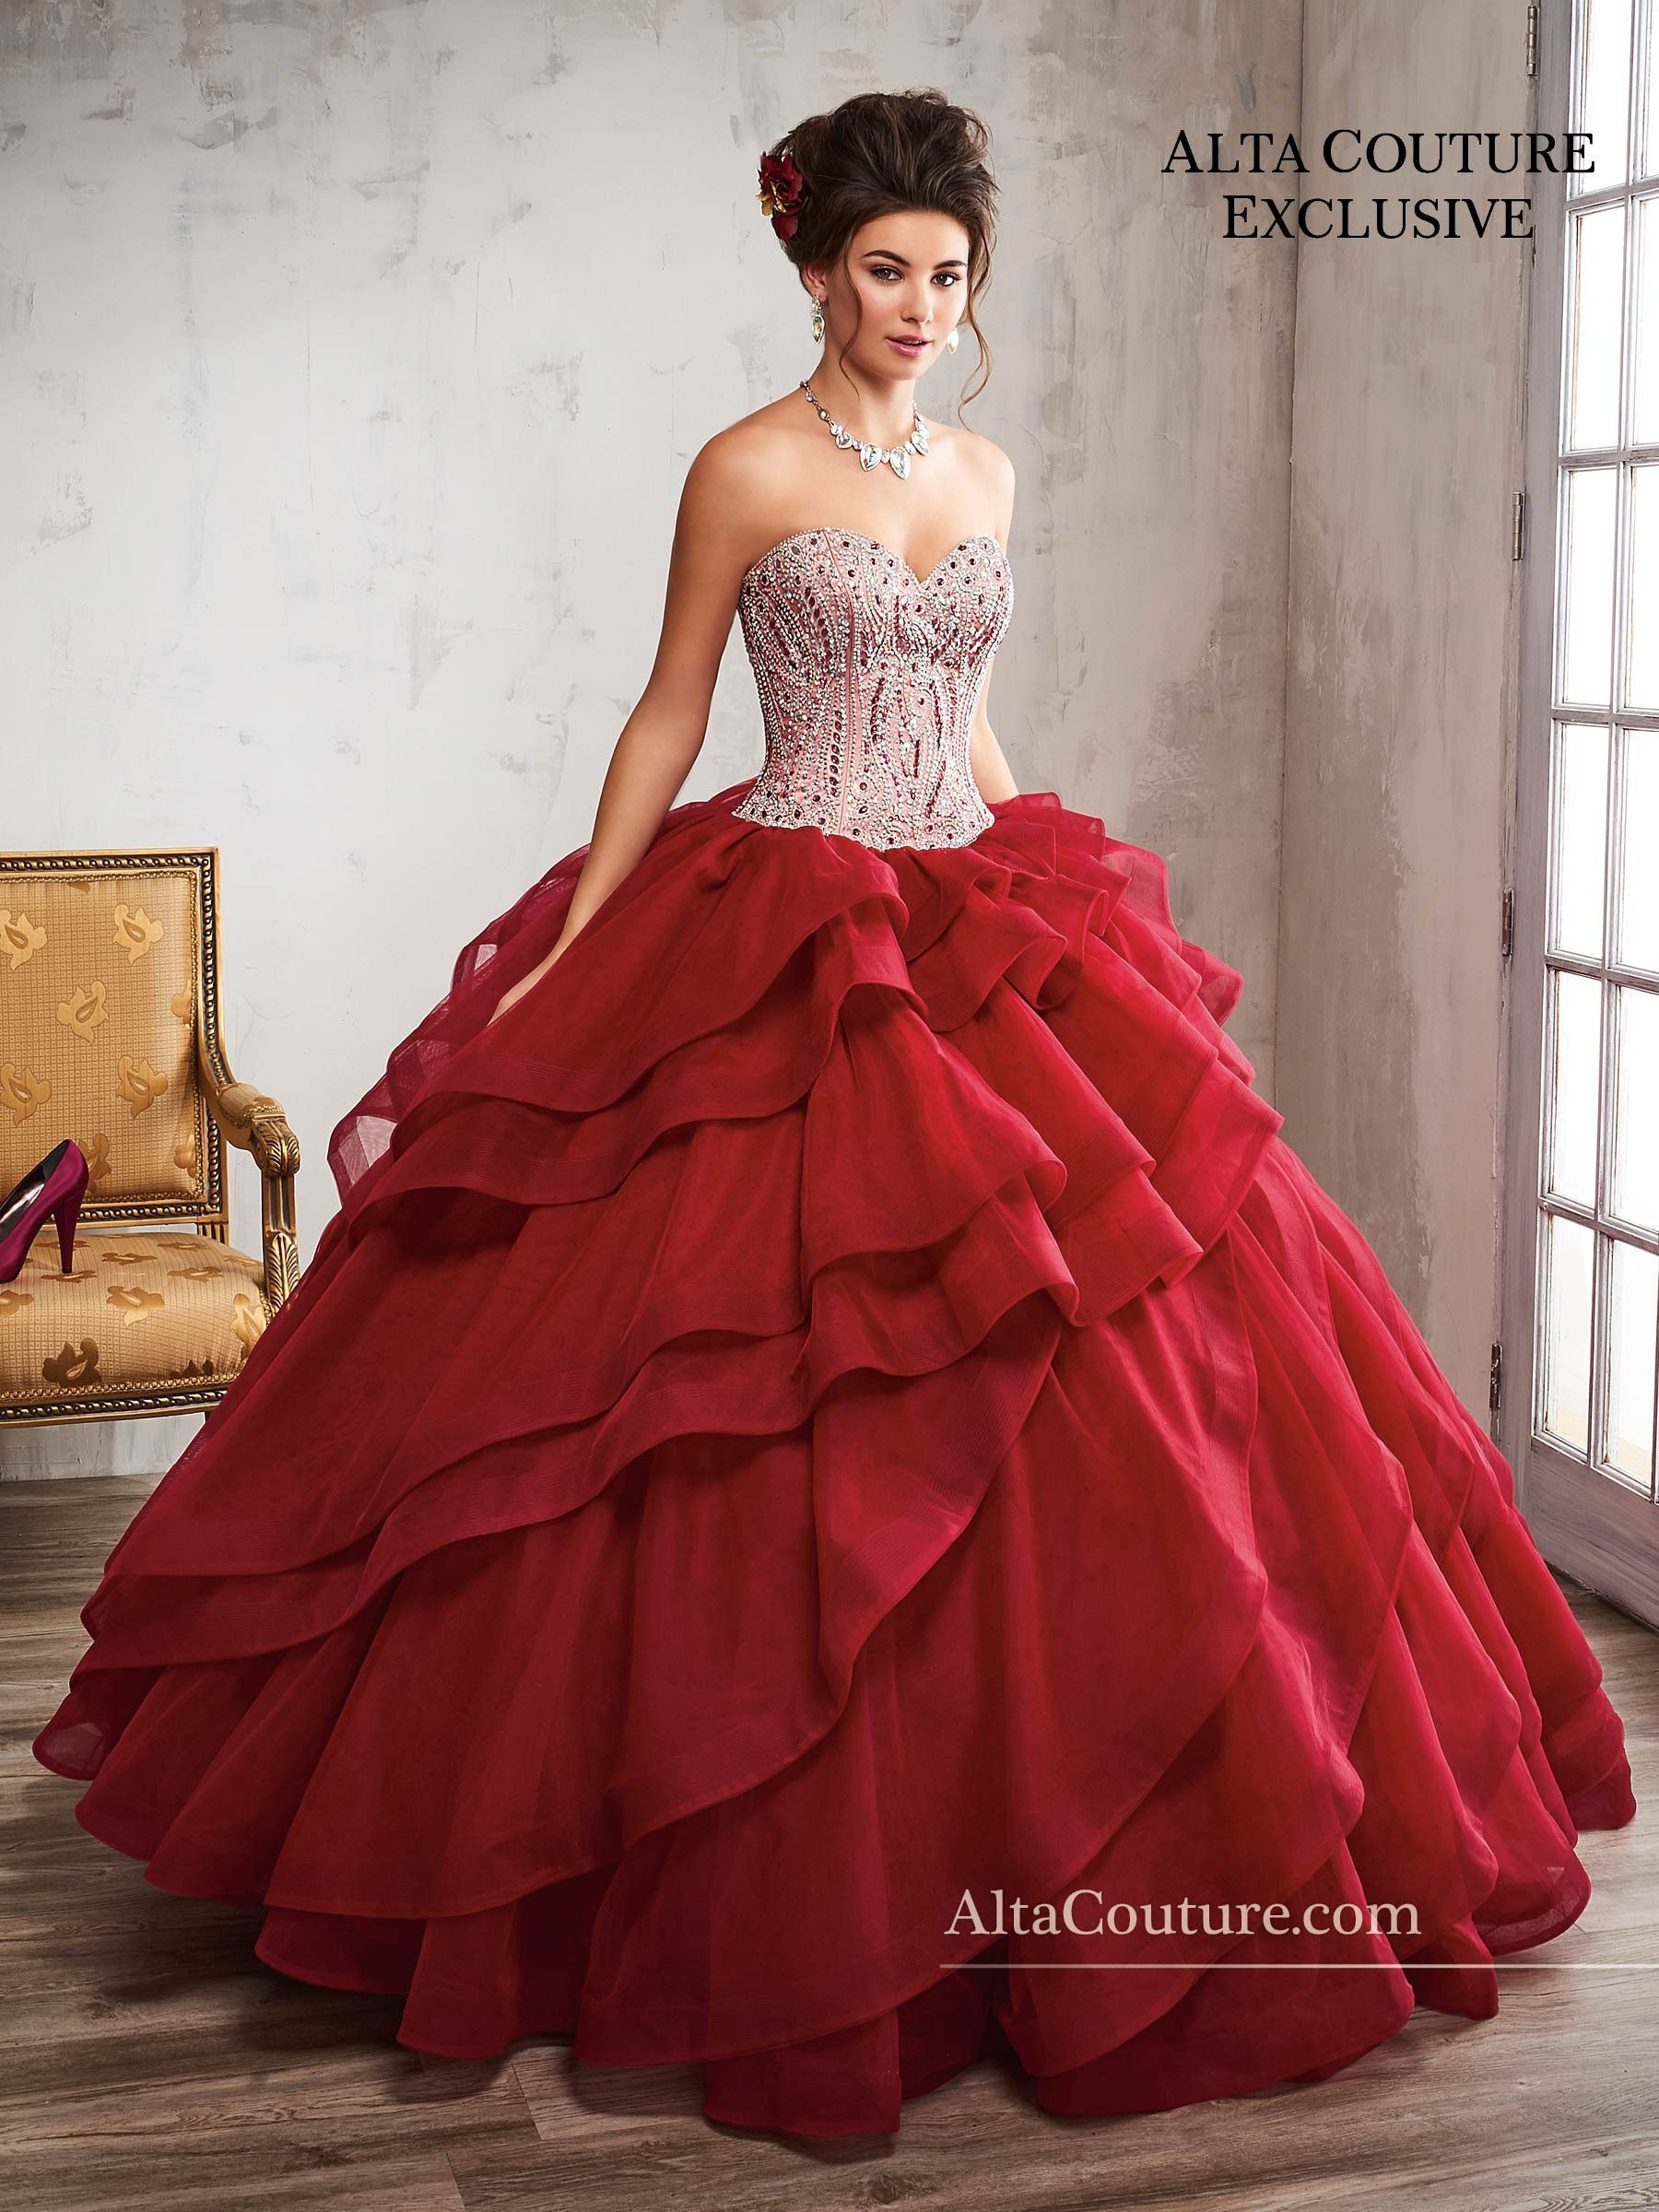 Ruffled Quinceanera Dress by Mary\'s Bridal Alta Couture 4T192 ...